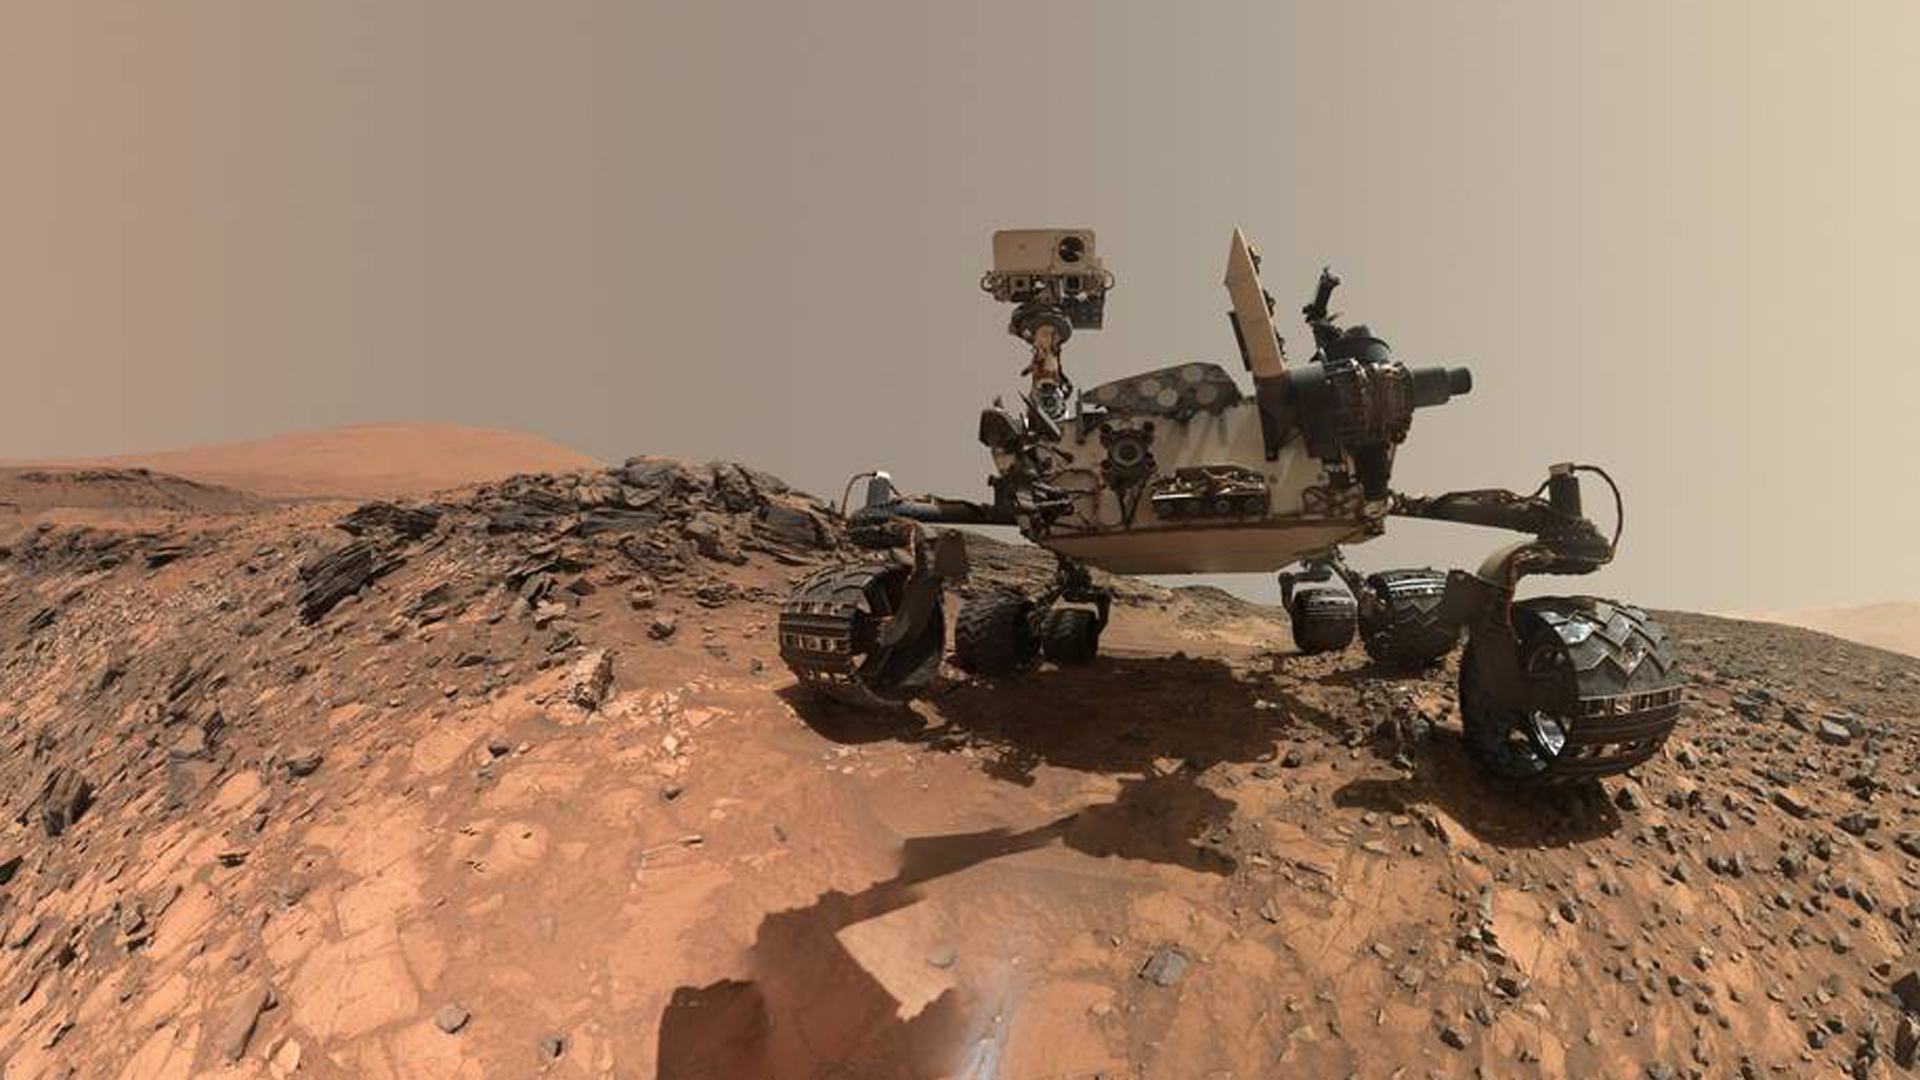 NASA's Curiosity Mars rover is seen at the site from which it reached down to drill into a rock target on lower Mount Sharp. (Credit: NASA/JPL-Caltech/MSSS)